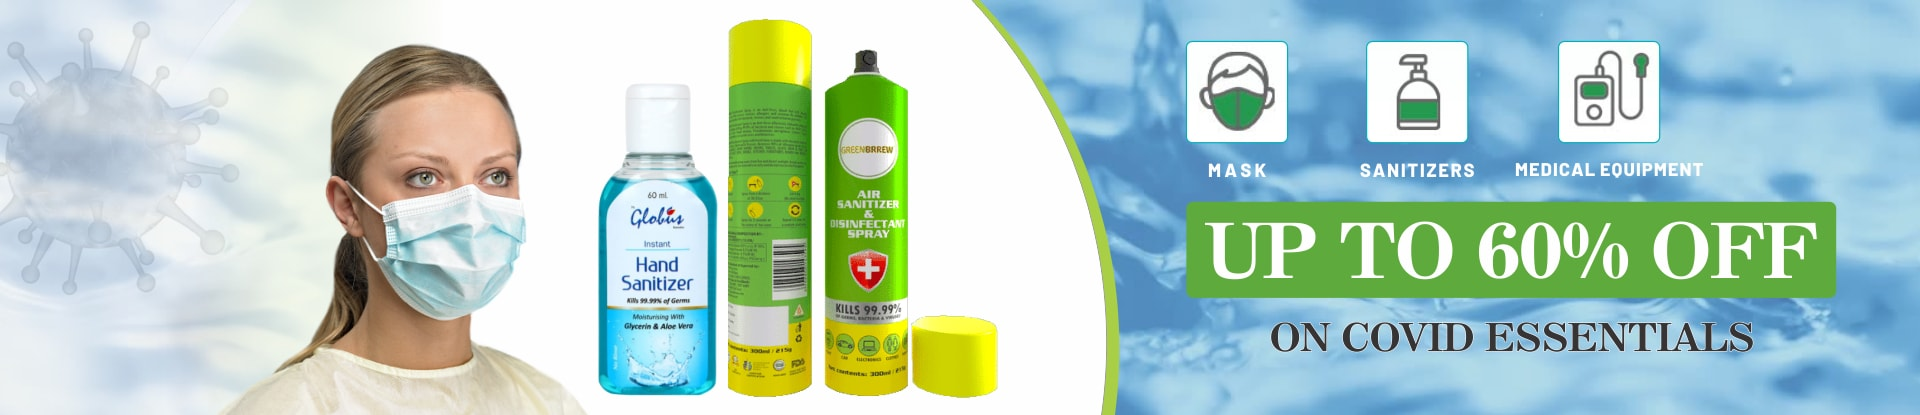 Buy Best Covid care Product Online